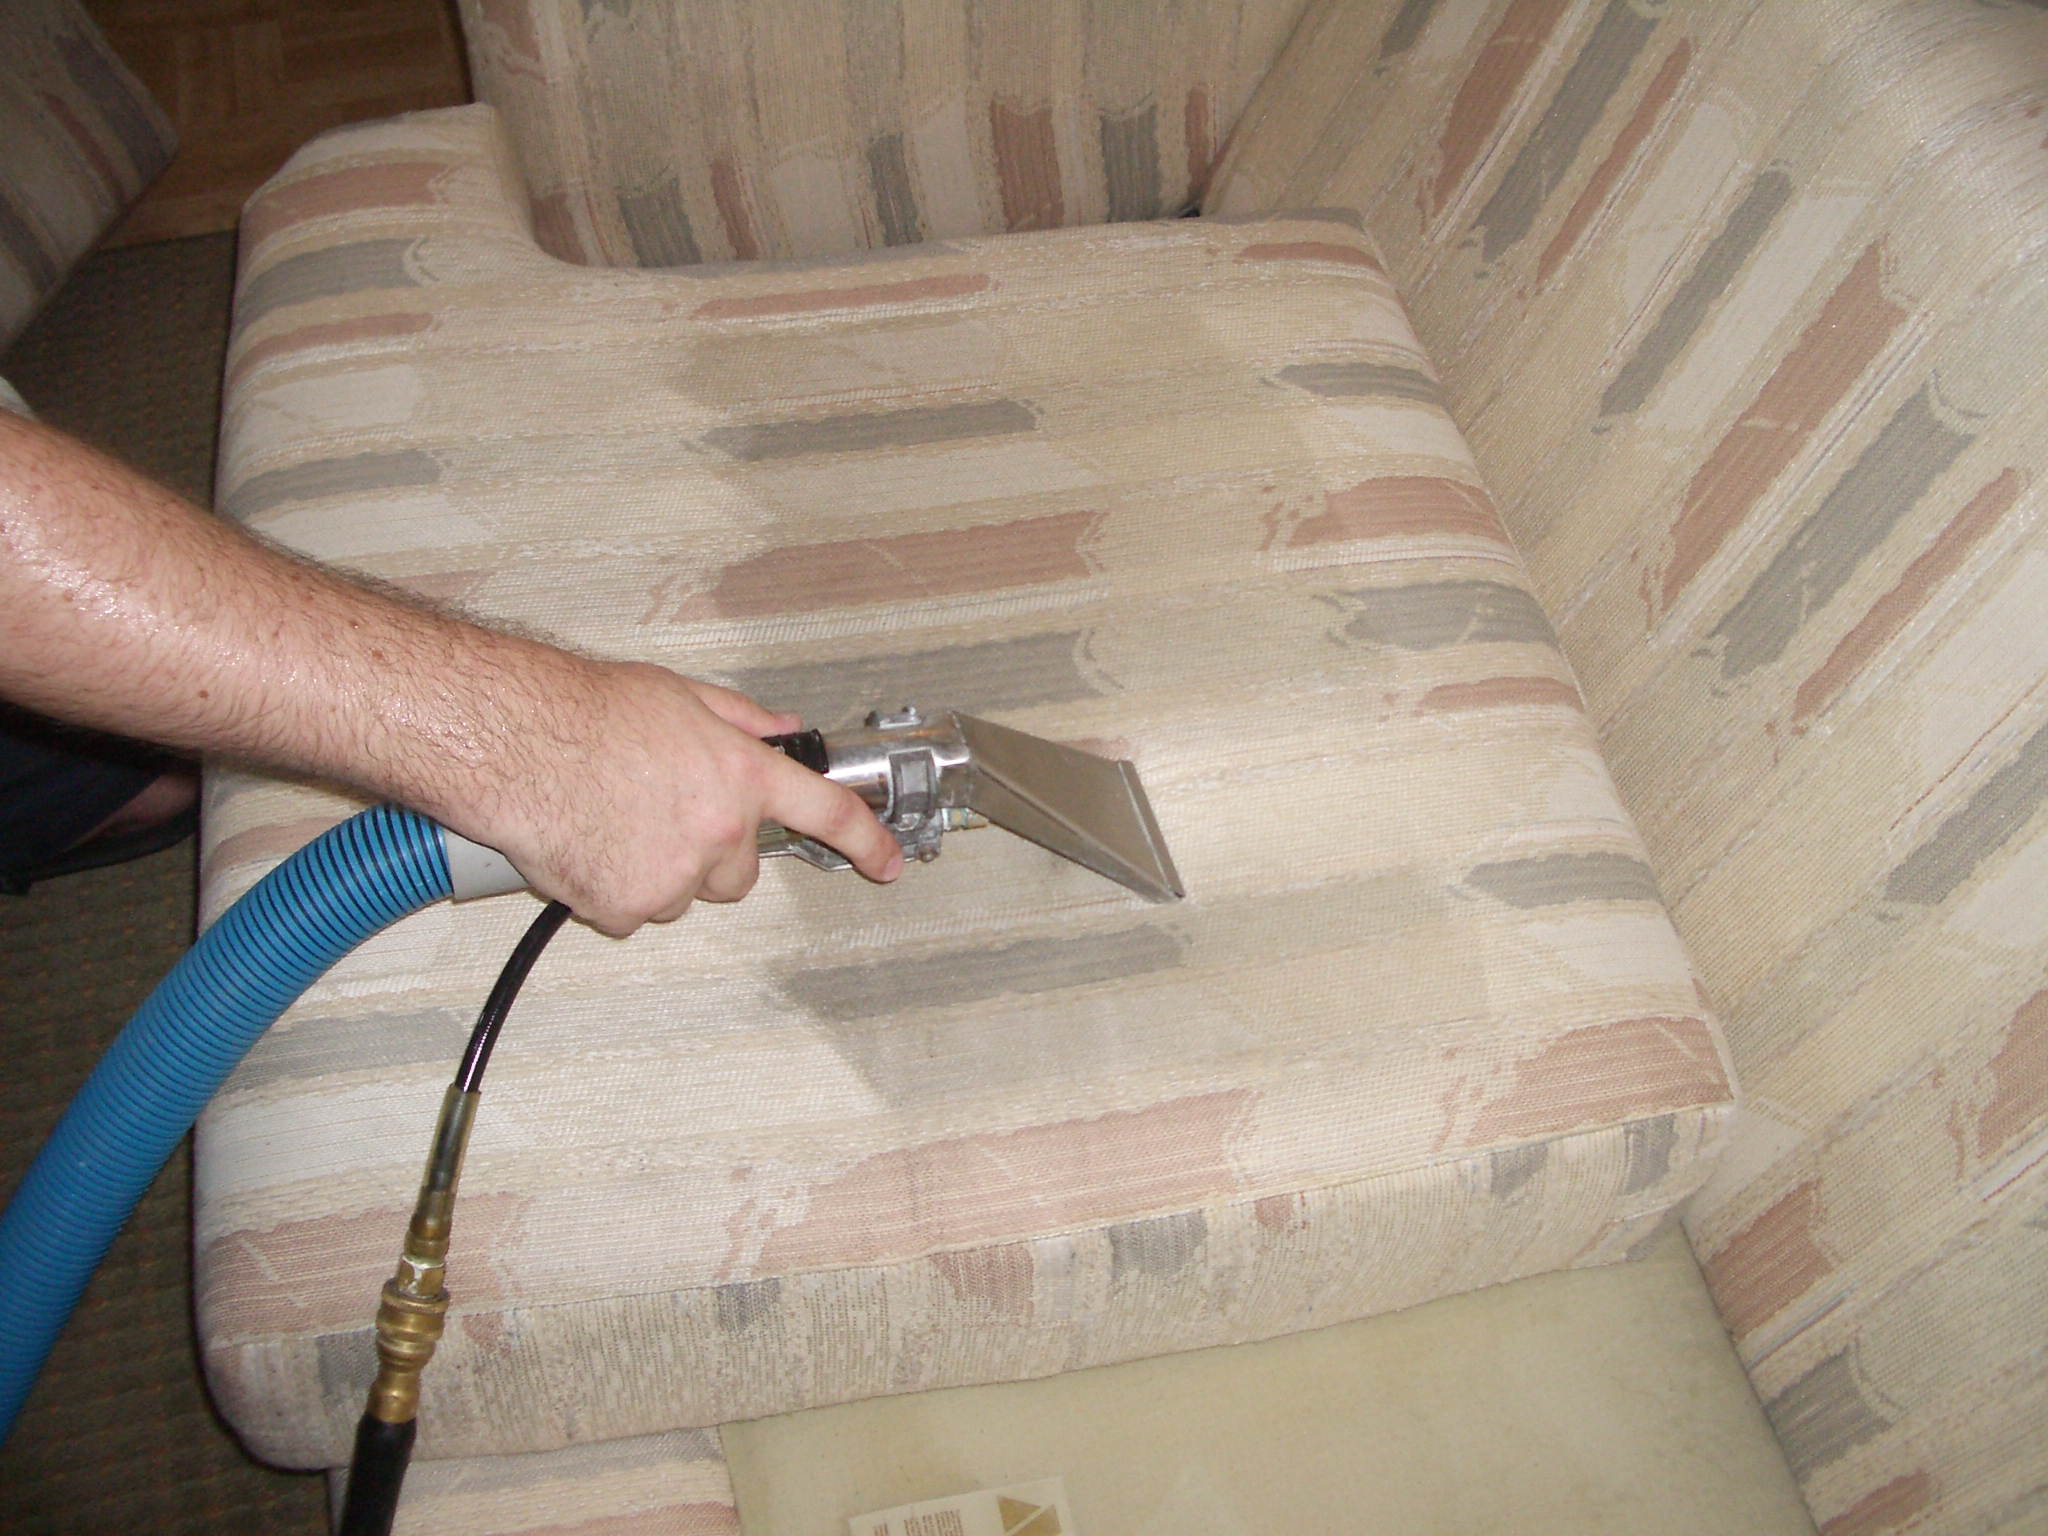 Upholstery Cleaning Furniture Cleaning Kleen Rite